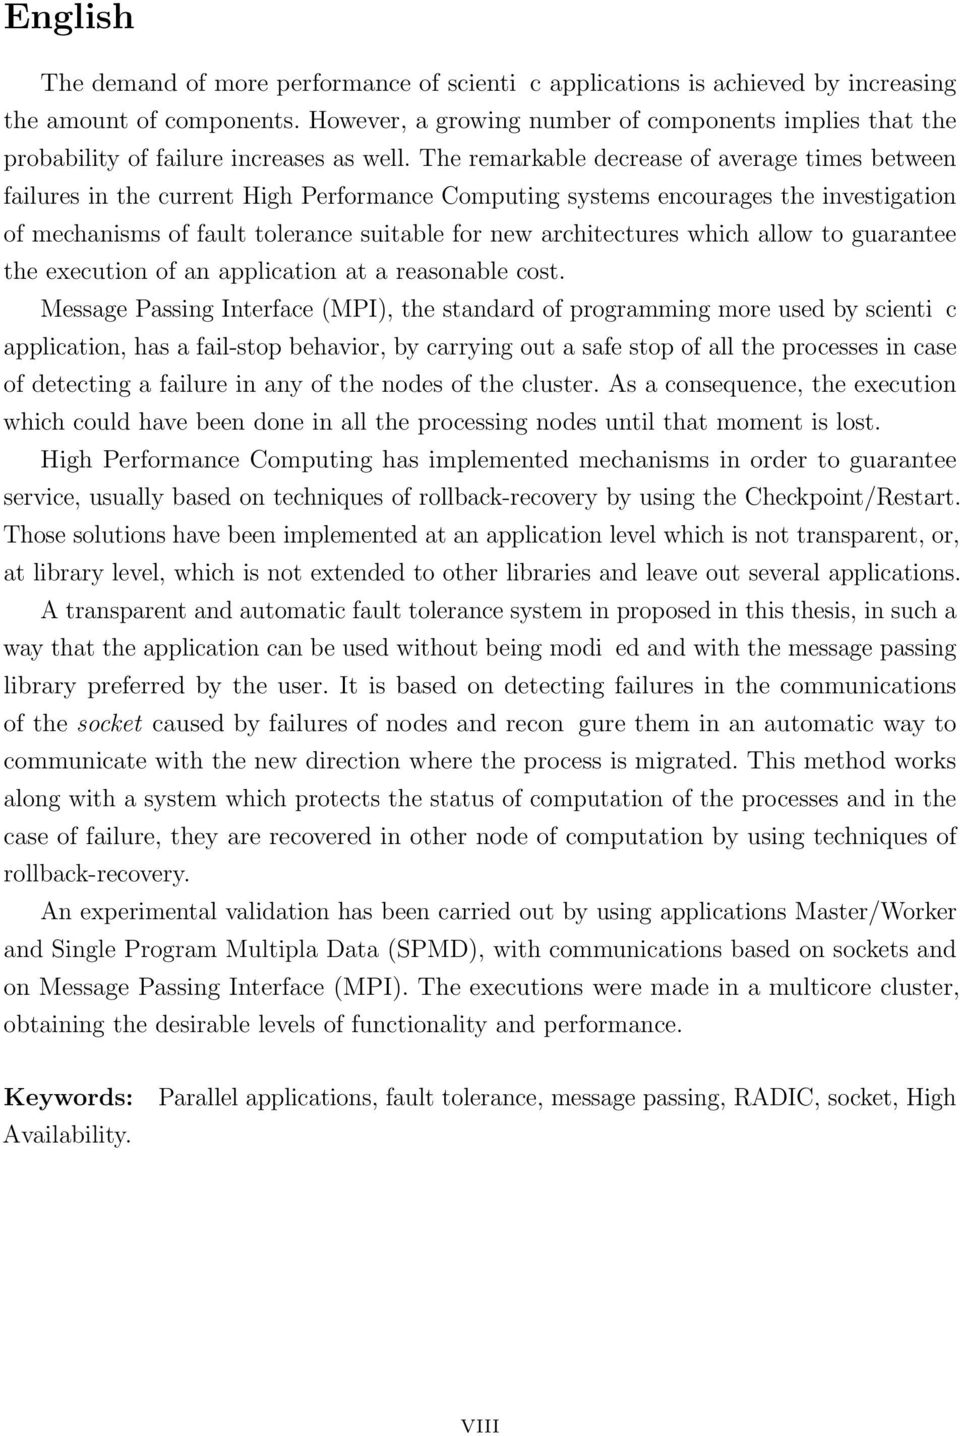 The remarkable decrease of average times between failures in the current High Performance Computing systems encourages the investigation of mechanisms of fault tolerance suitable for new